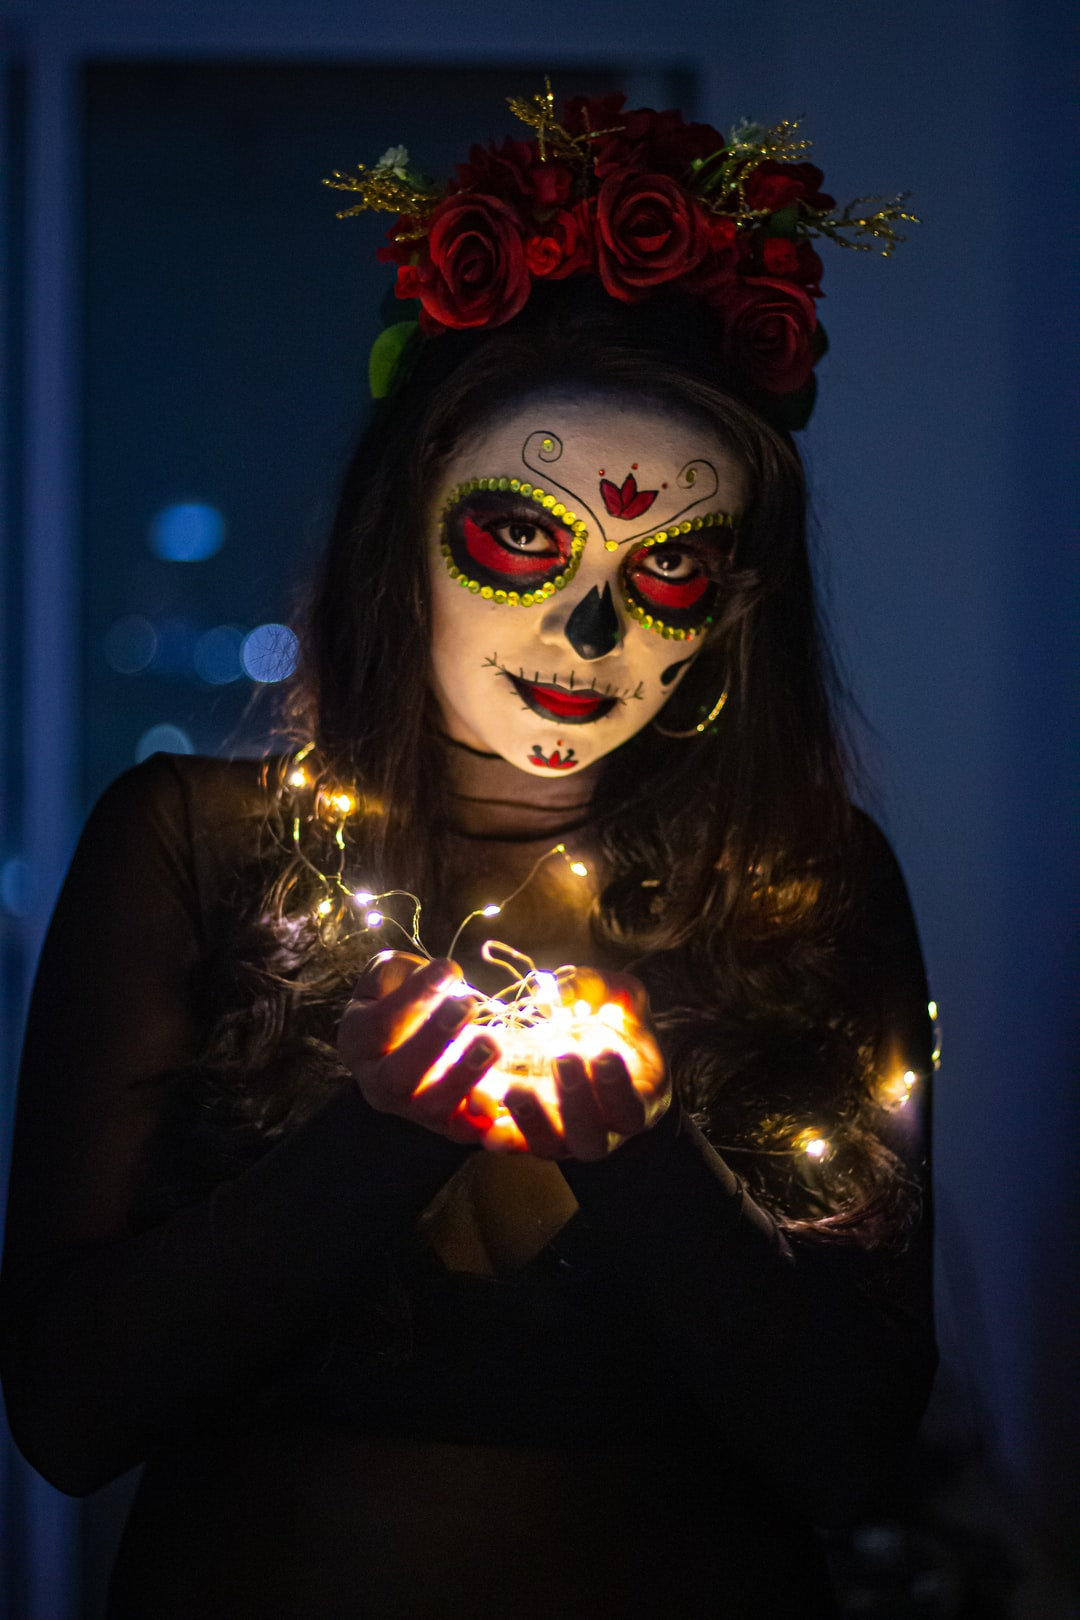 Woman with lights and spooky make-up for halloween